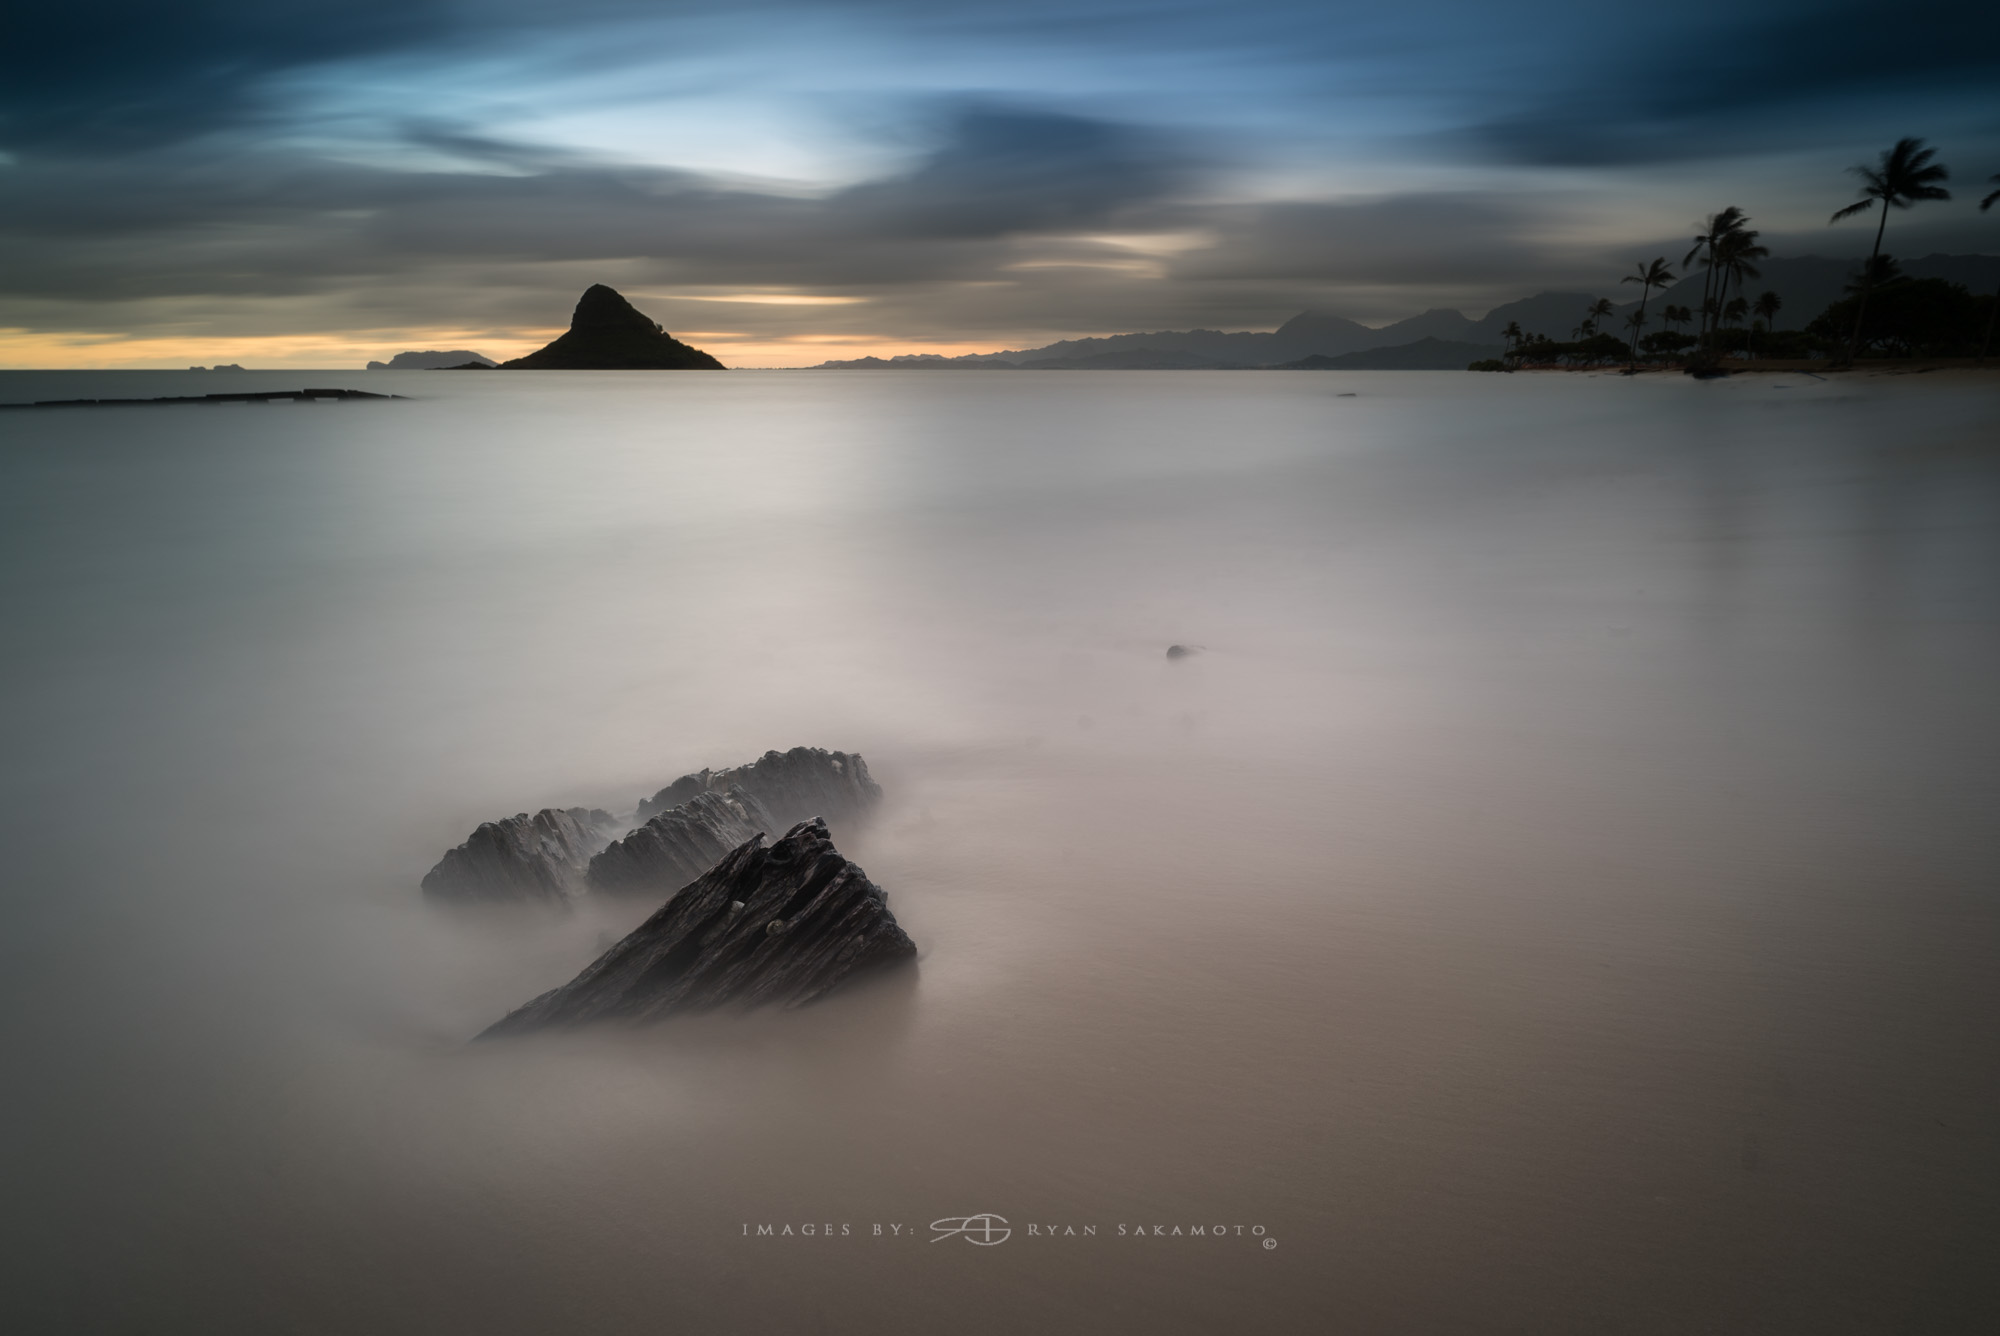 Sunrise at Kualoa Beach Park 11.06.17 Sony A7S II |  242 sec. |  f/8  |  ISO 50  |  Zeiss Batis 2.8/18mm  Edited in Lightroom & Photoshop CC 2015  Copyright 2016 Ryan Sakamoto, All rights reserved